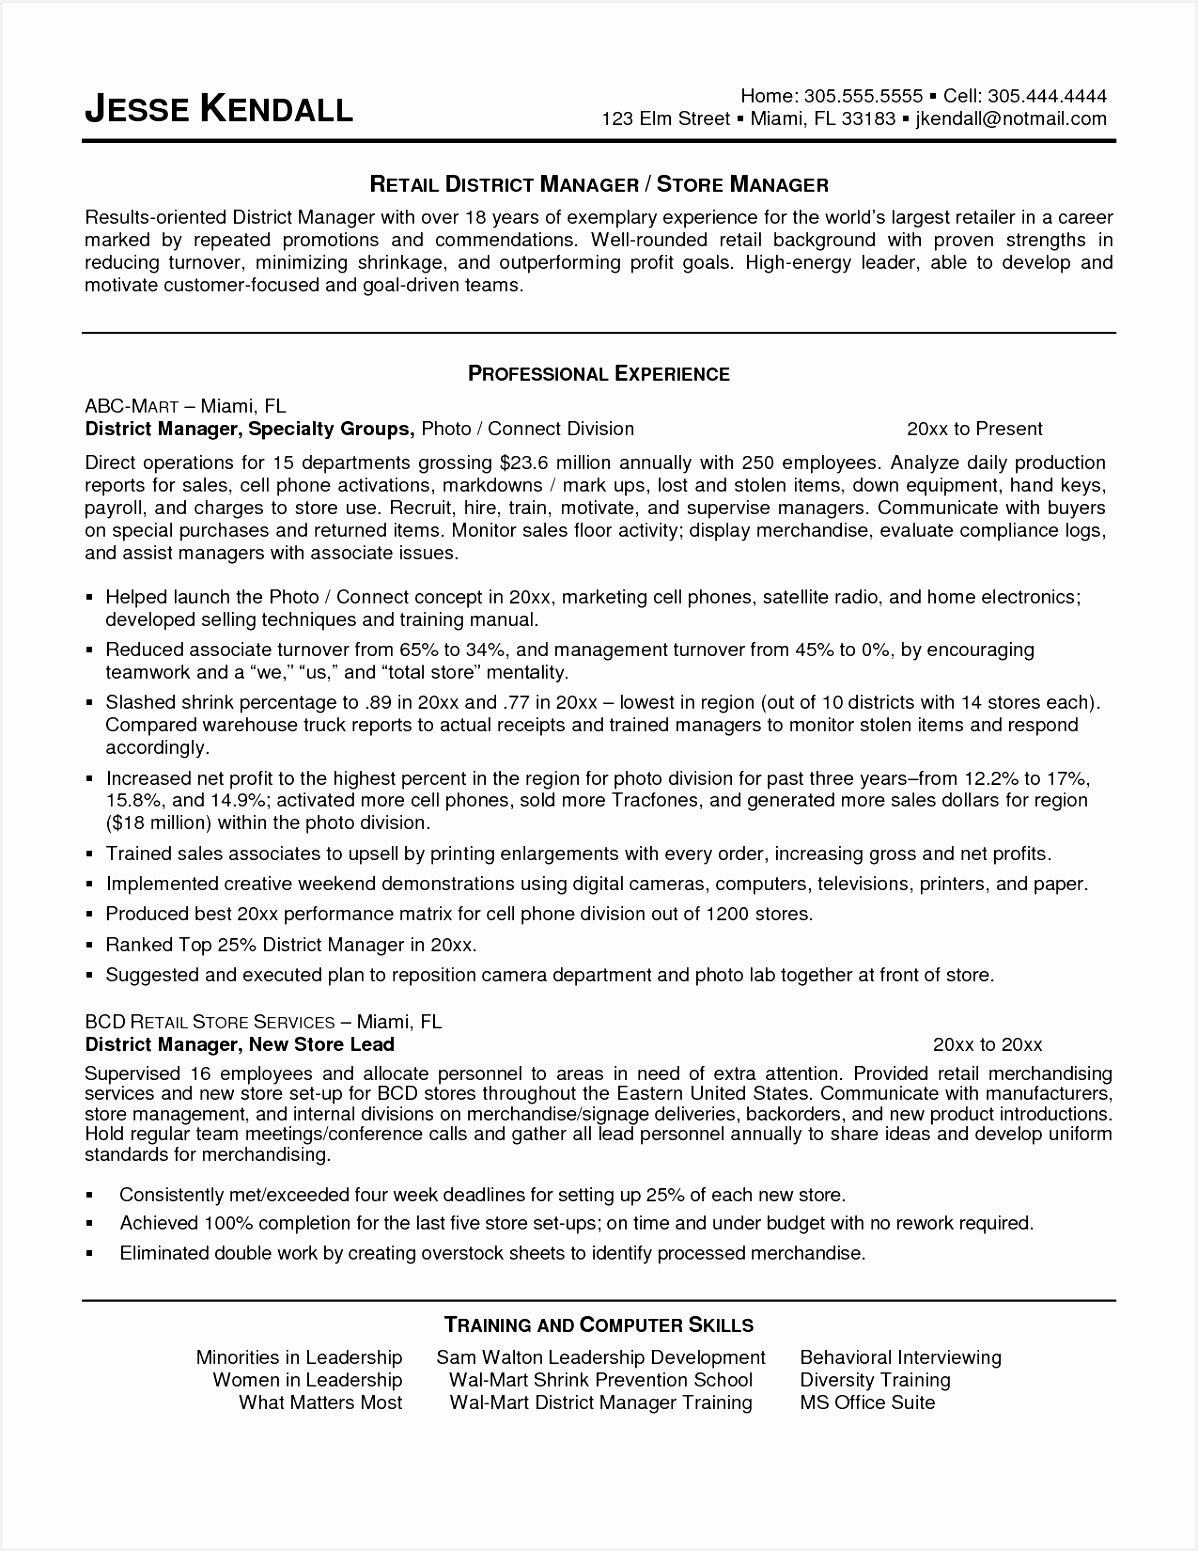 Microsoft Trainer Sample Resume Fsadg Beautiful Retail Resume Template Microsoft Word Fresh Retail Resume Sample Of Microsoft Trainer Sample Resume Vjdoe Unique Sample Pilot Resume – Microsoft Dynamics Ax Sample Resume Archives